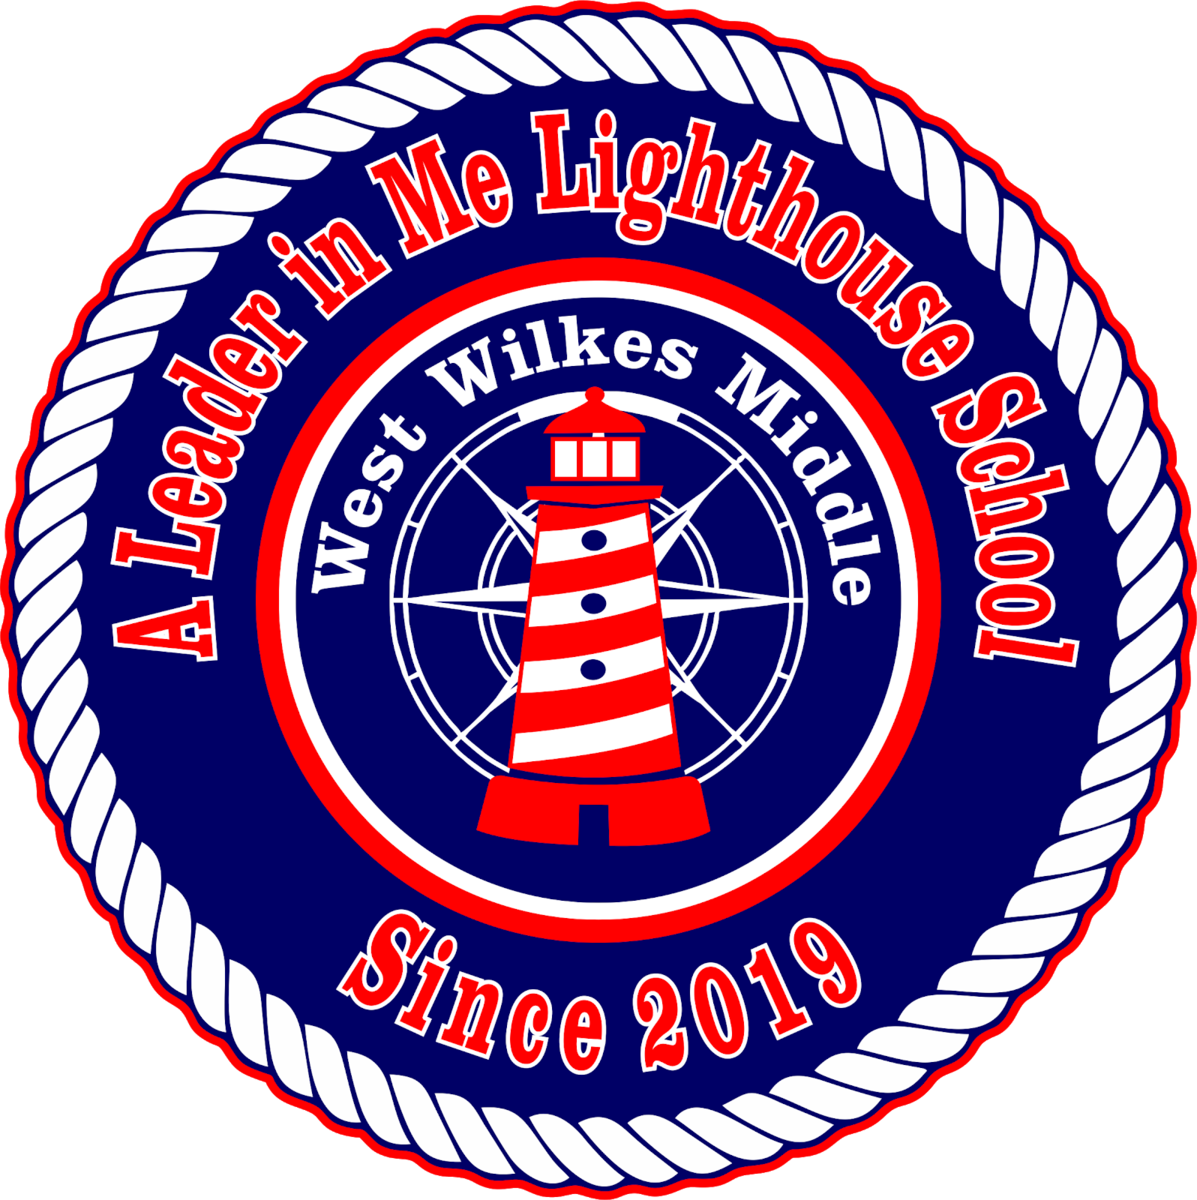 Image of the WWMS Lighthouse Seal